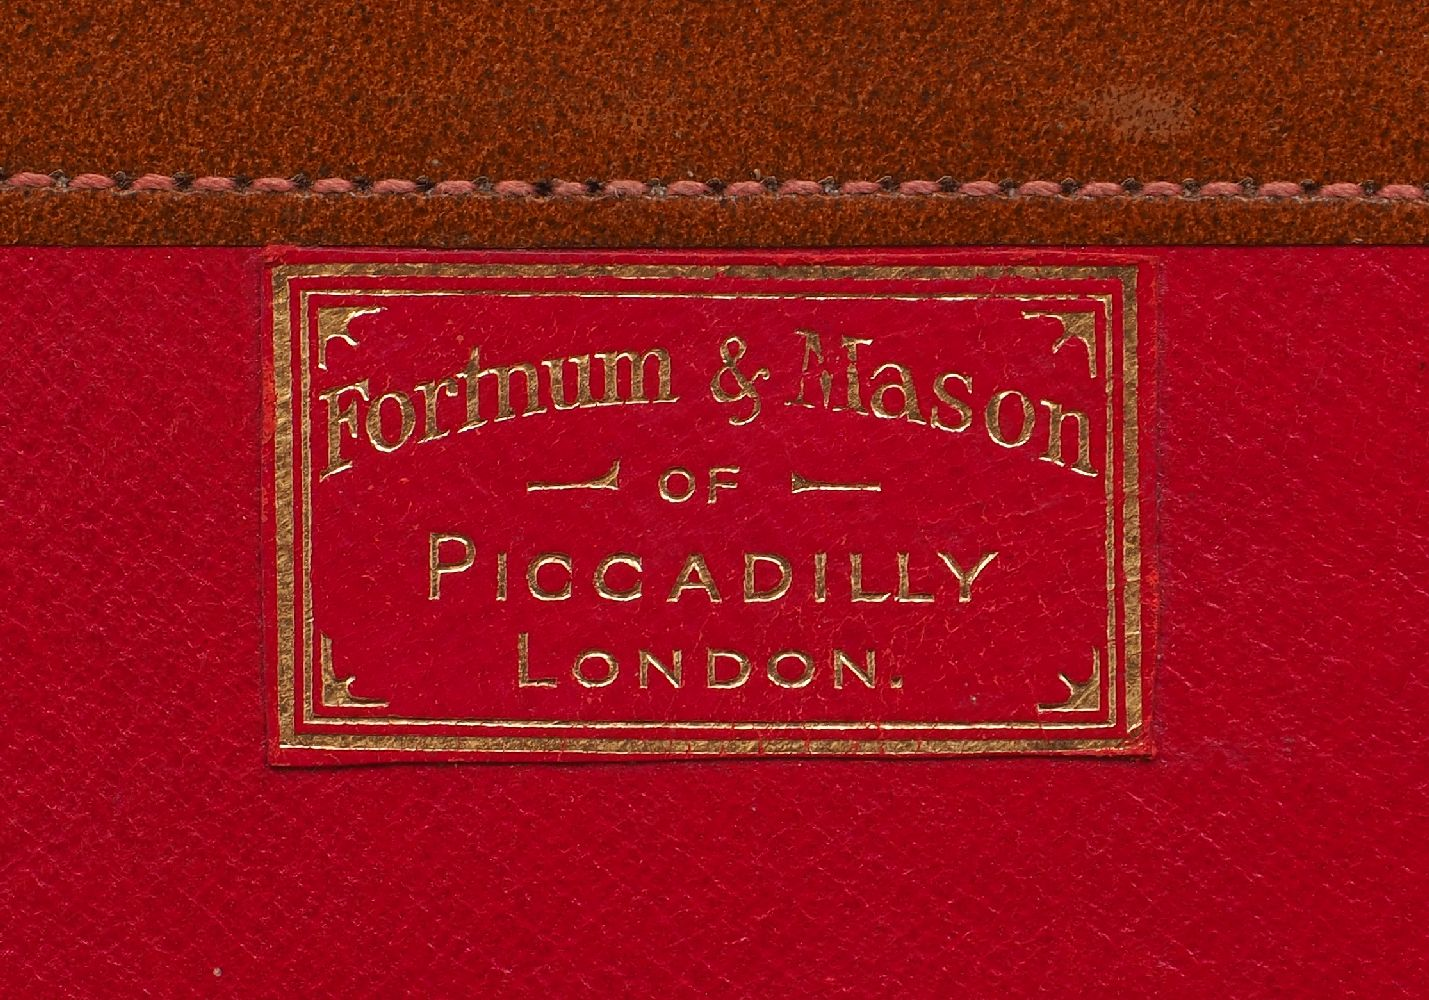 A Fortnum & Mason orange leather briefcase, mid 20th Century, outfitted with a gilt metal clasp - Image 2 of 2